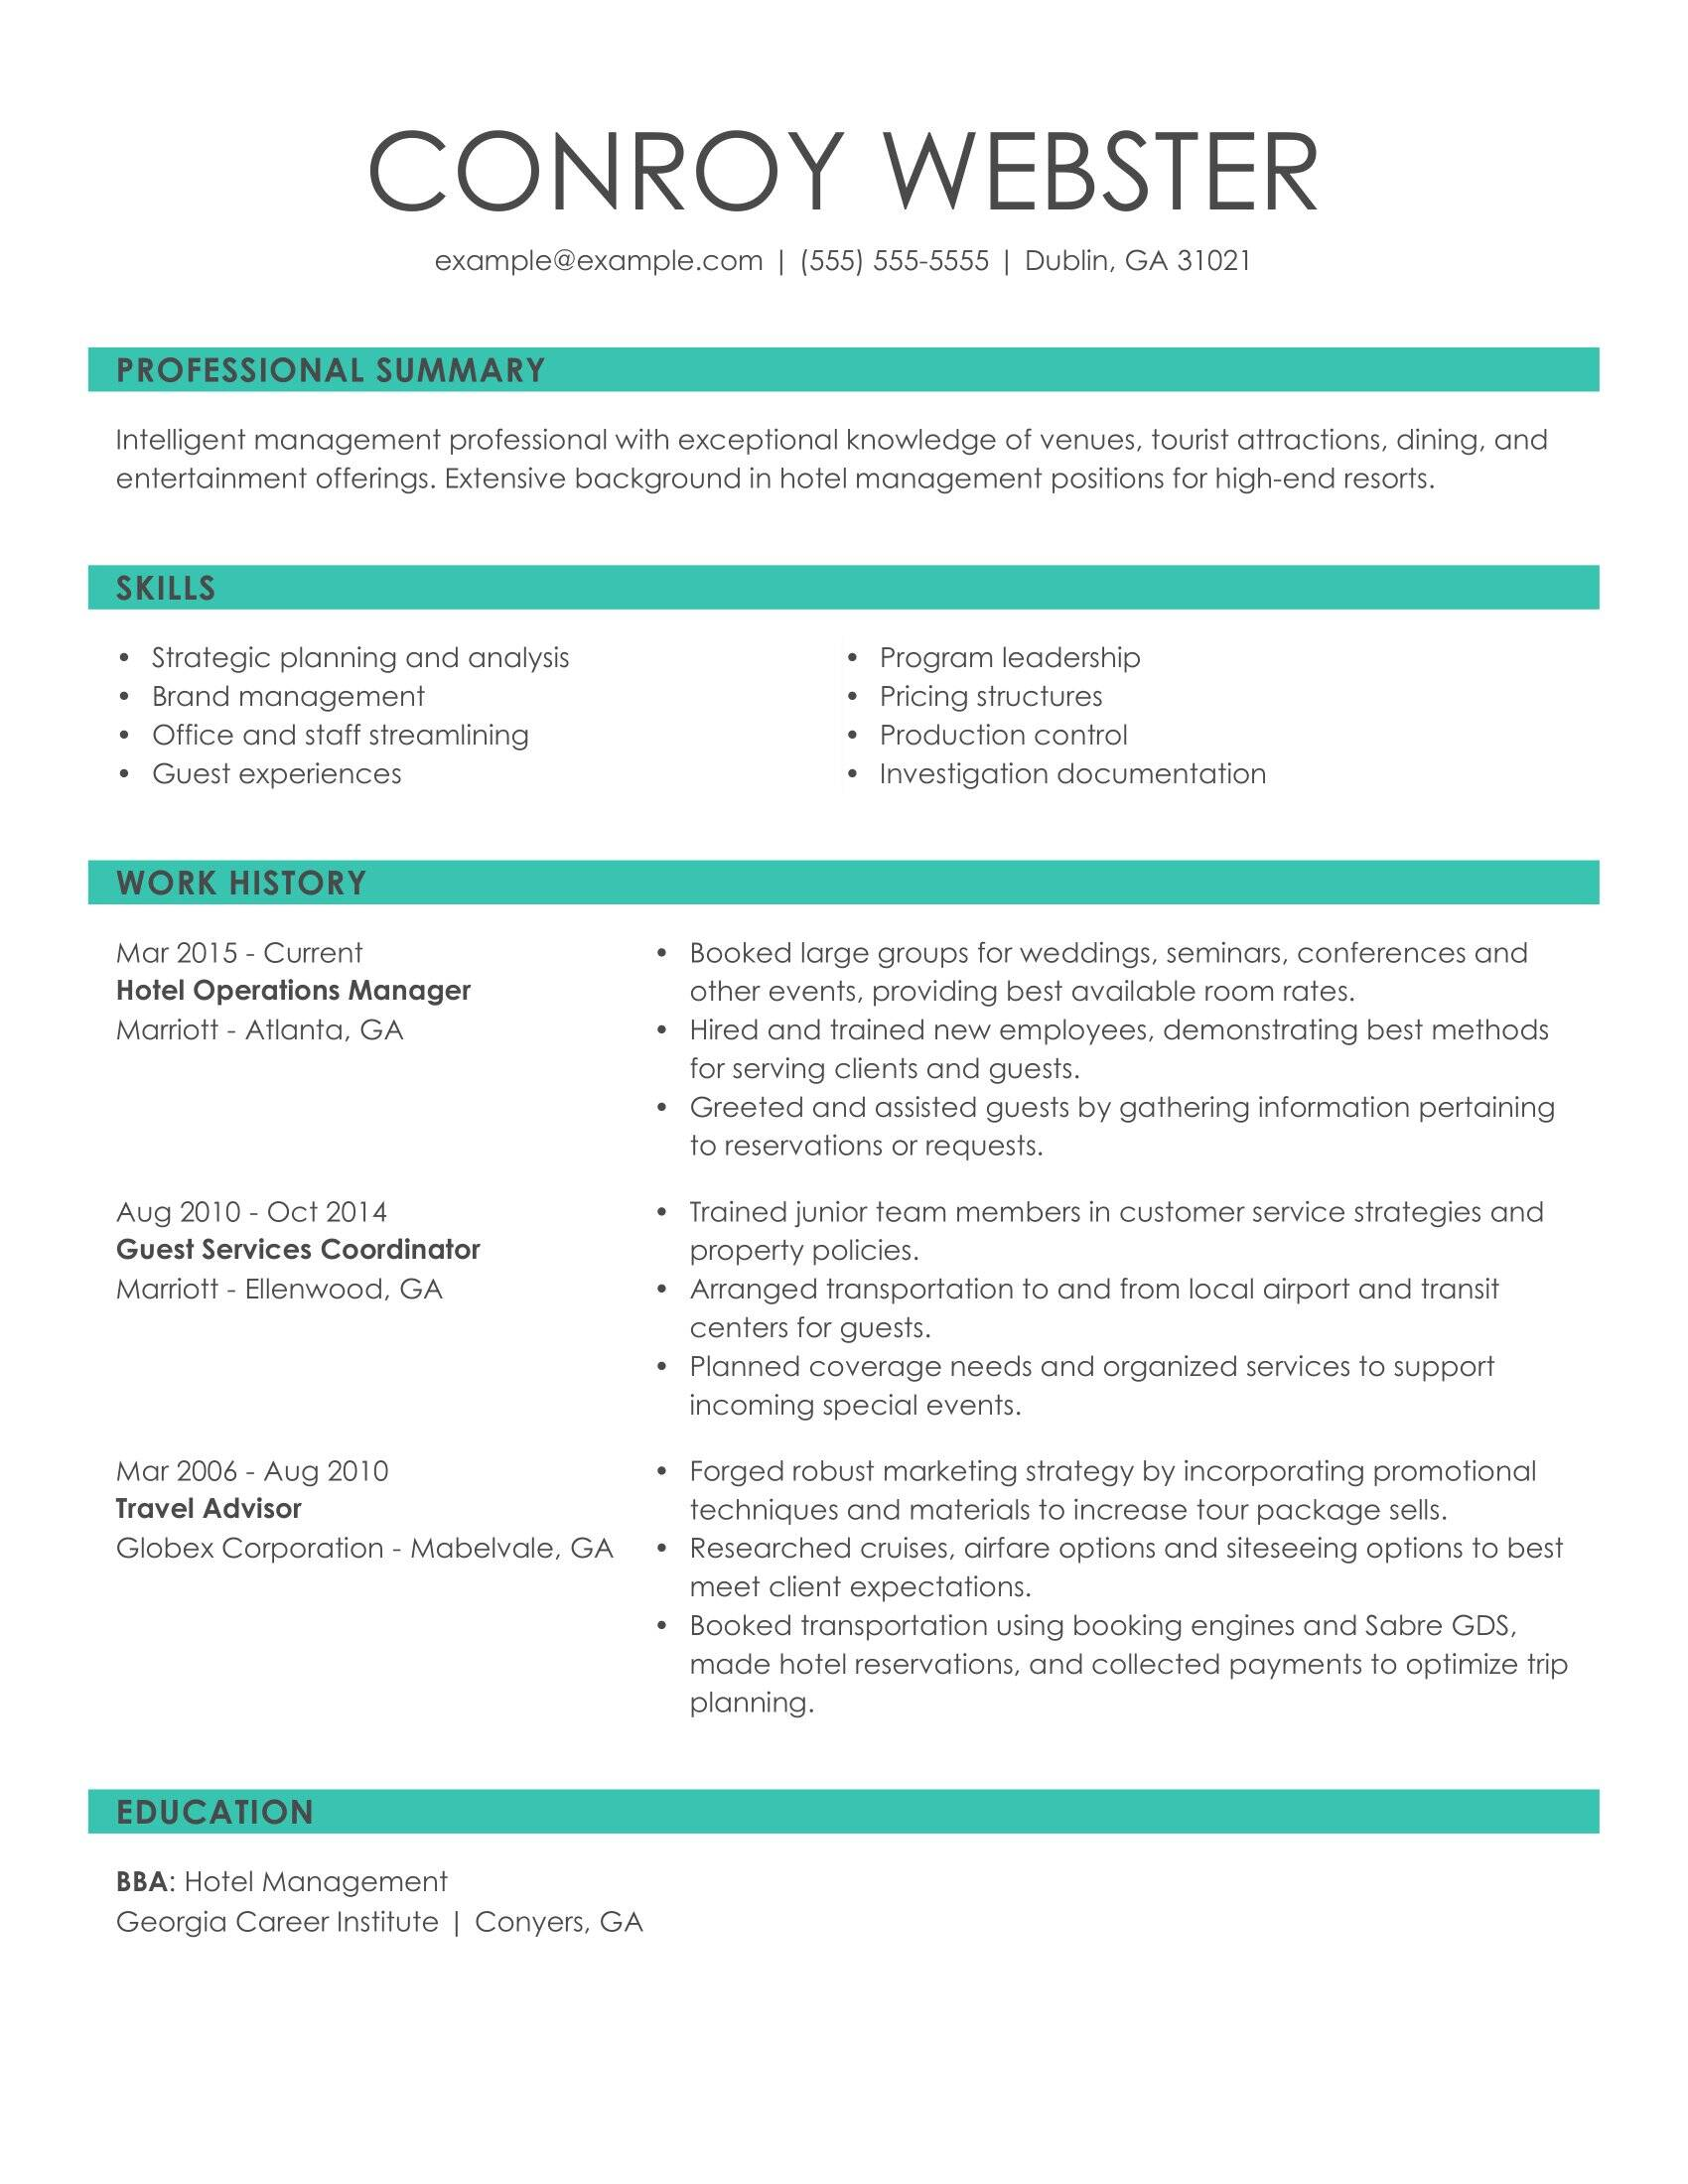 see our top customer service resume example good summary examples hotel ops manager icons Resume Good Resume Summary Examples